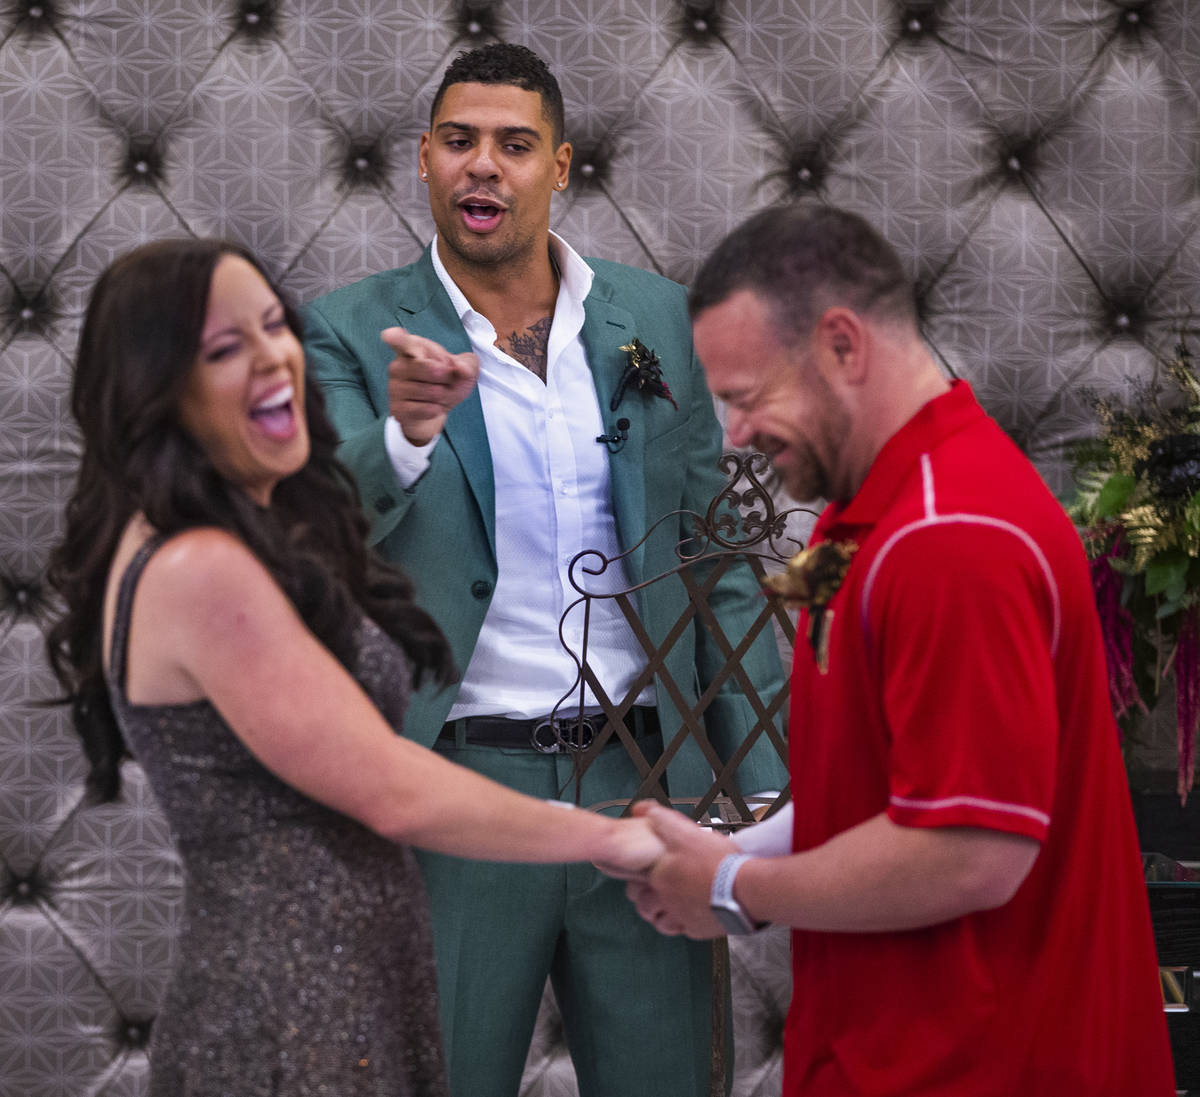 Vegas Golden Knights player Ryan Reaves, center, jokingly counsels the couple as he conducts a ...